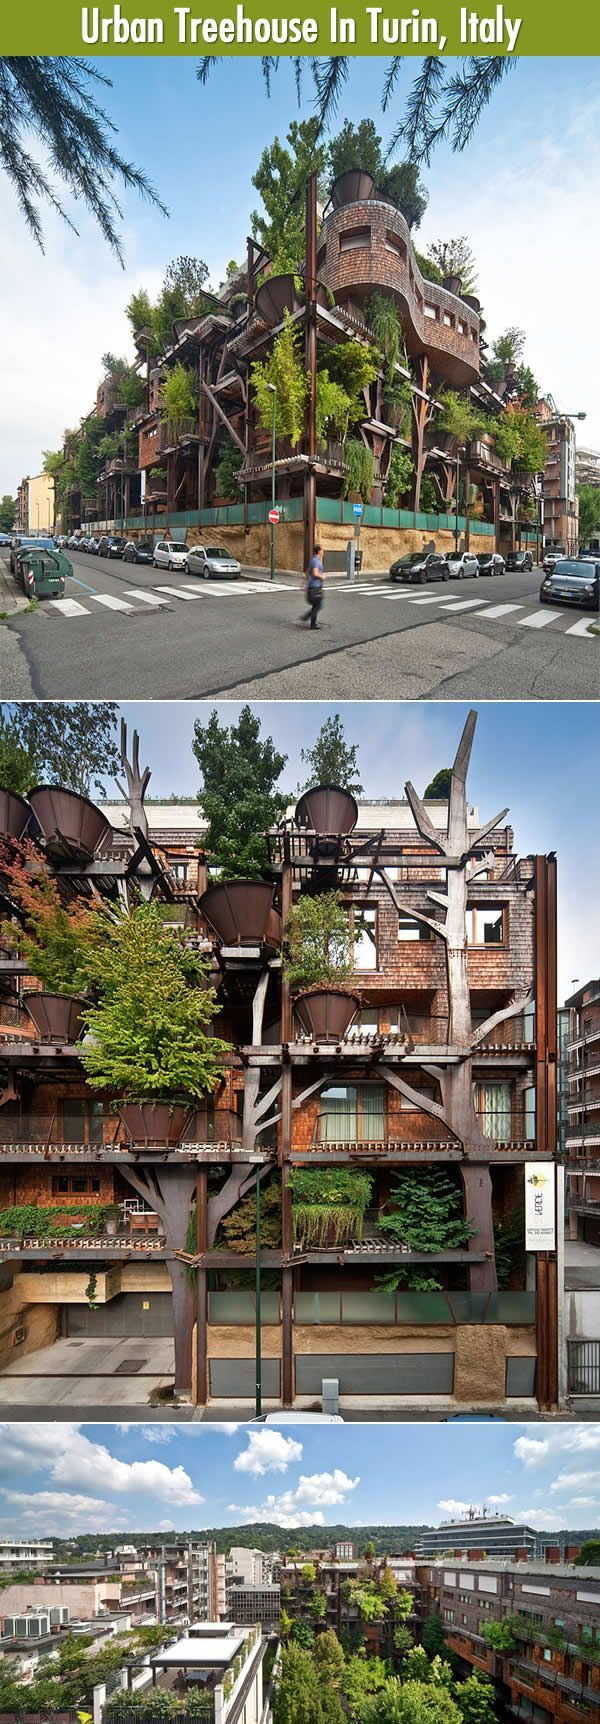 The One And Only, Urban Treehouse In Turin, Italy. | Funny pictures and Inspirational designs.